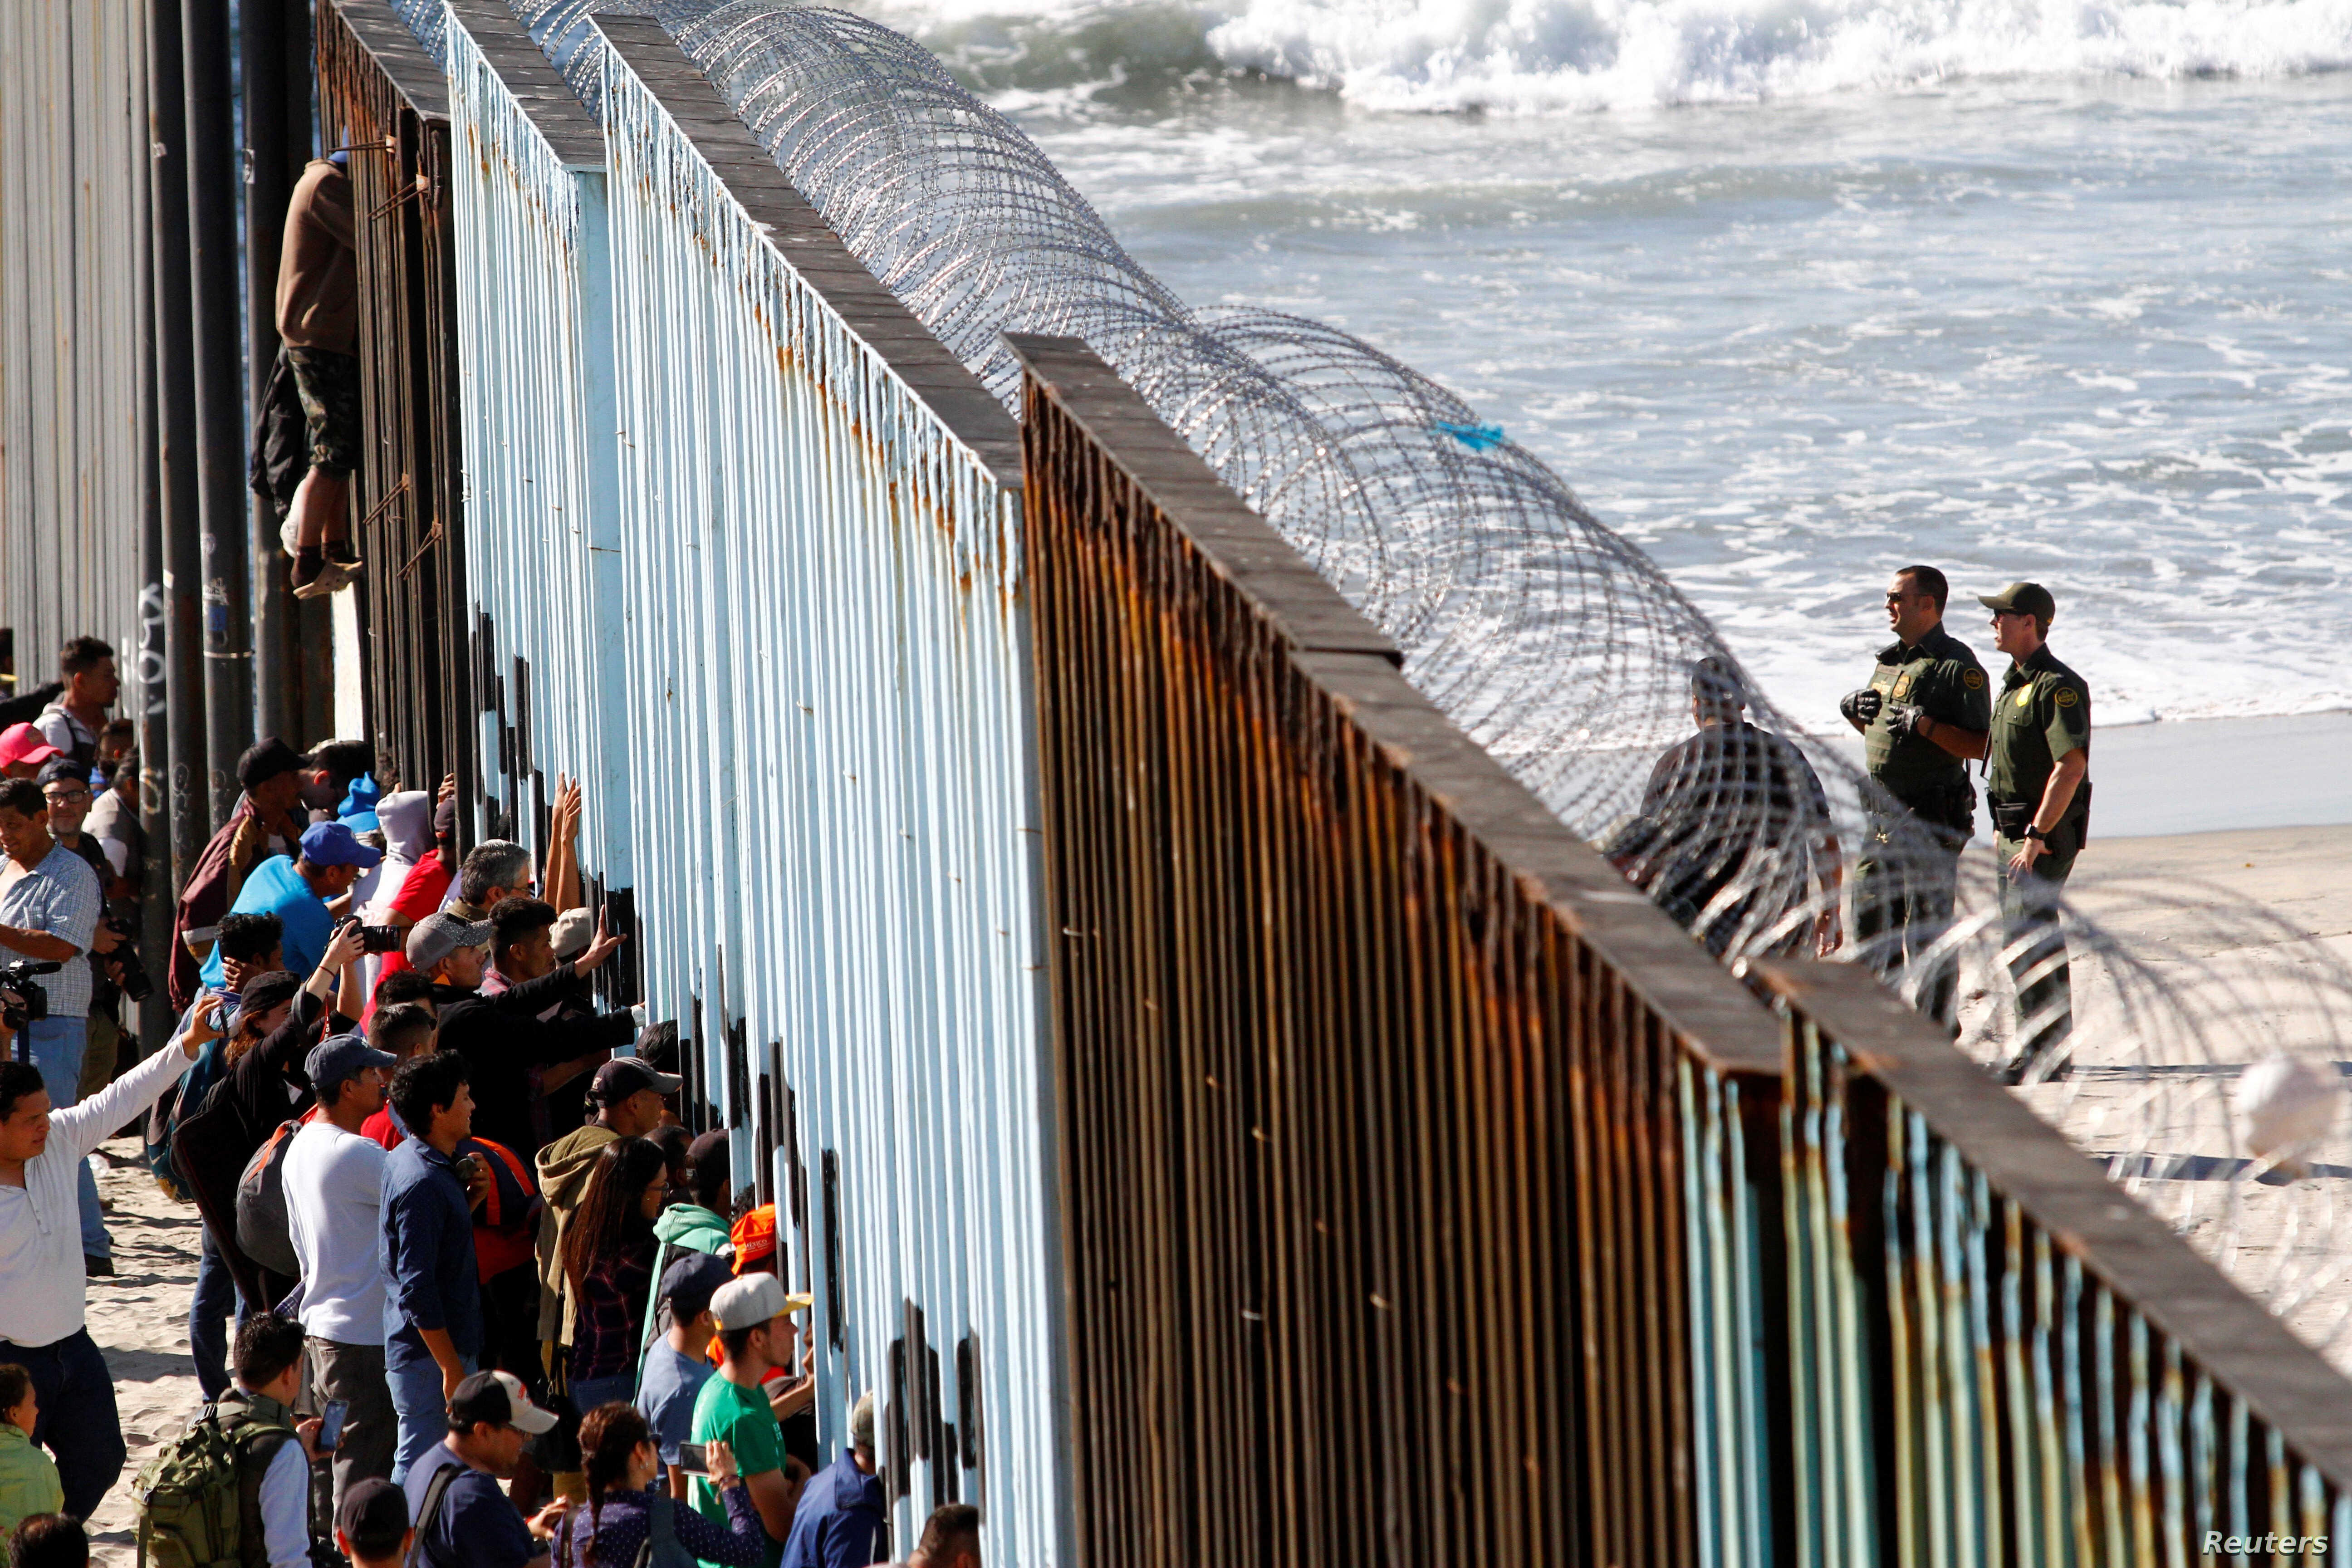 Migrants, part of a caravan of thousands trying to reach the U.S., look through the border fence between Mexico and the United States, in Tijuana, Mexico, Nov. 14, 2018.